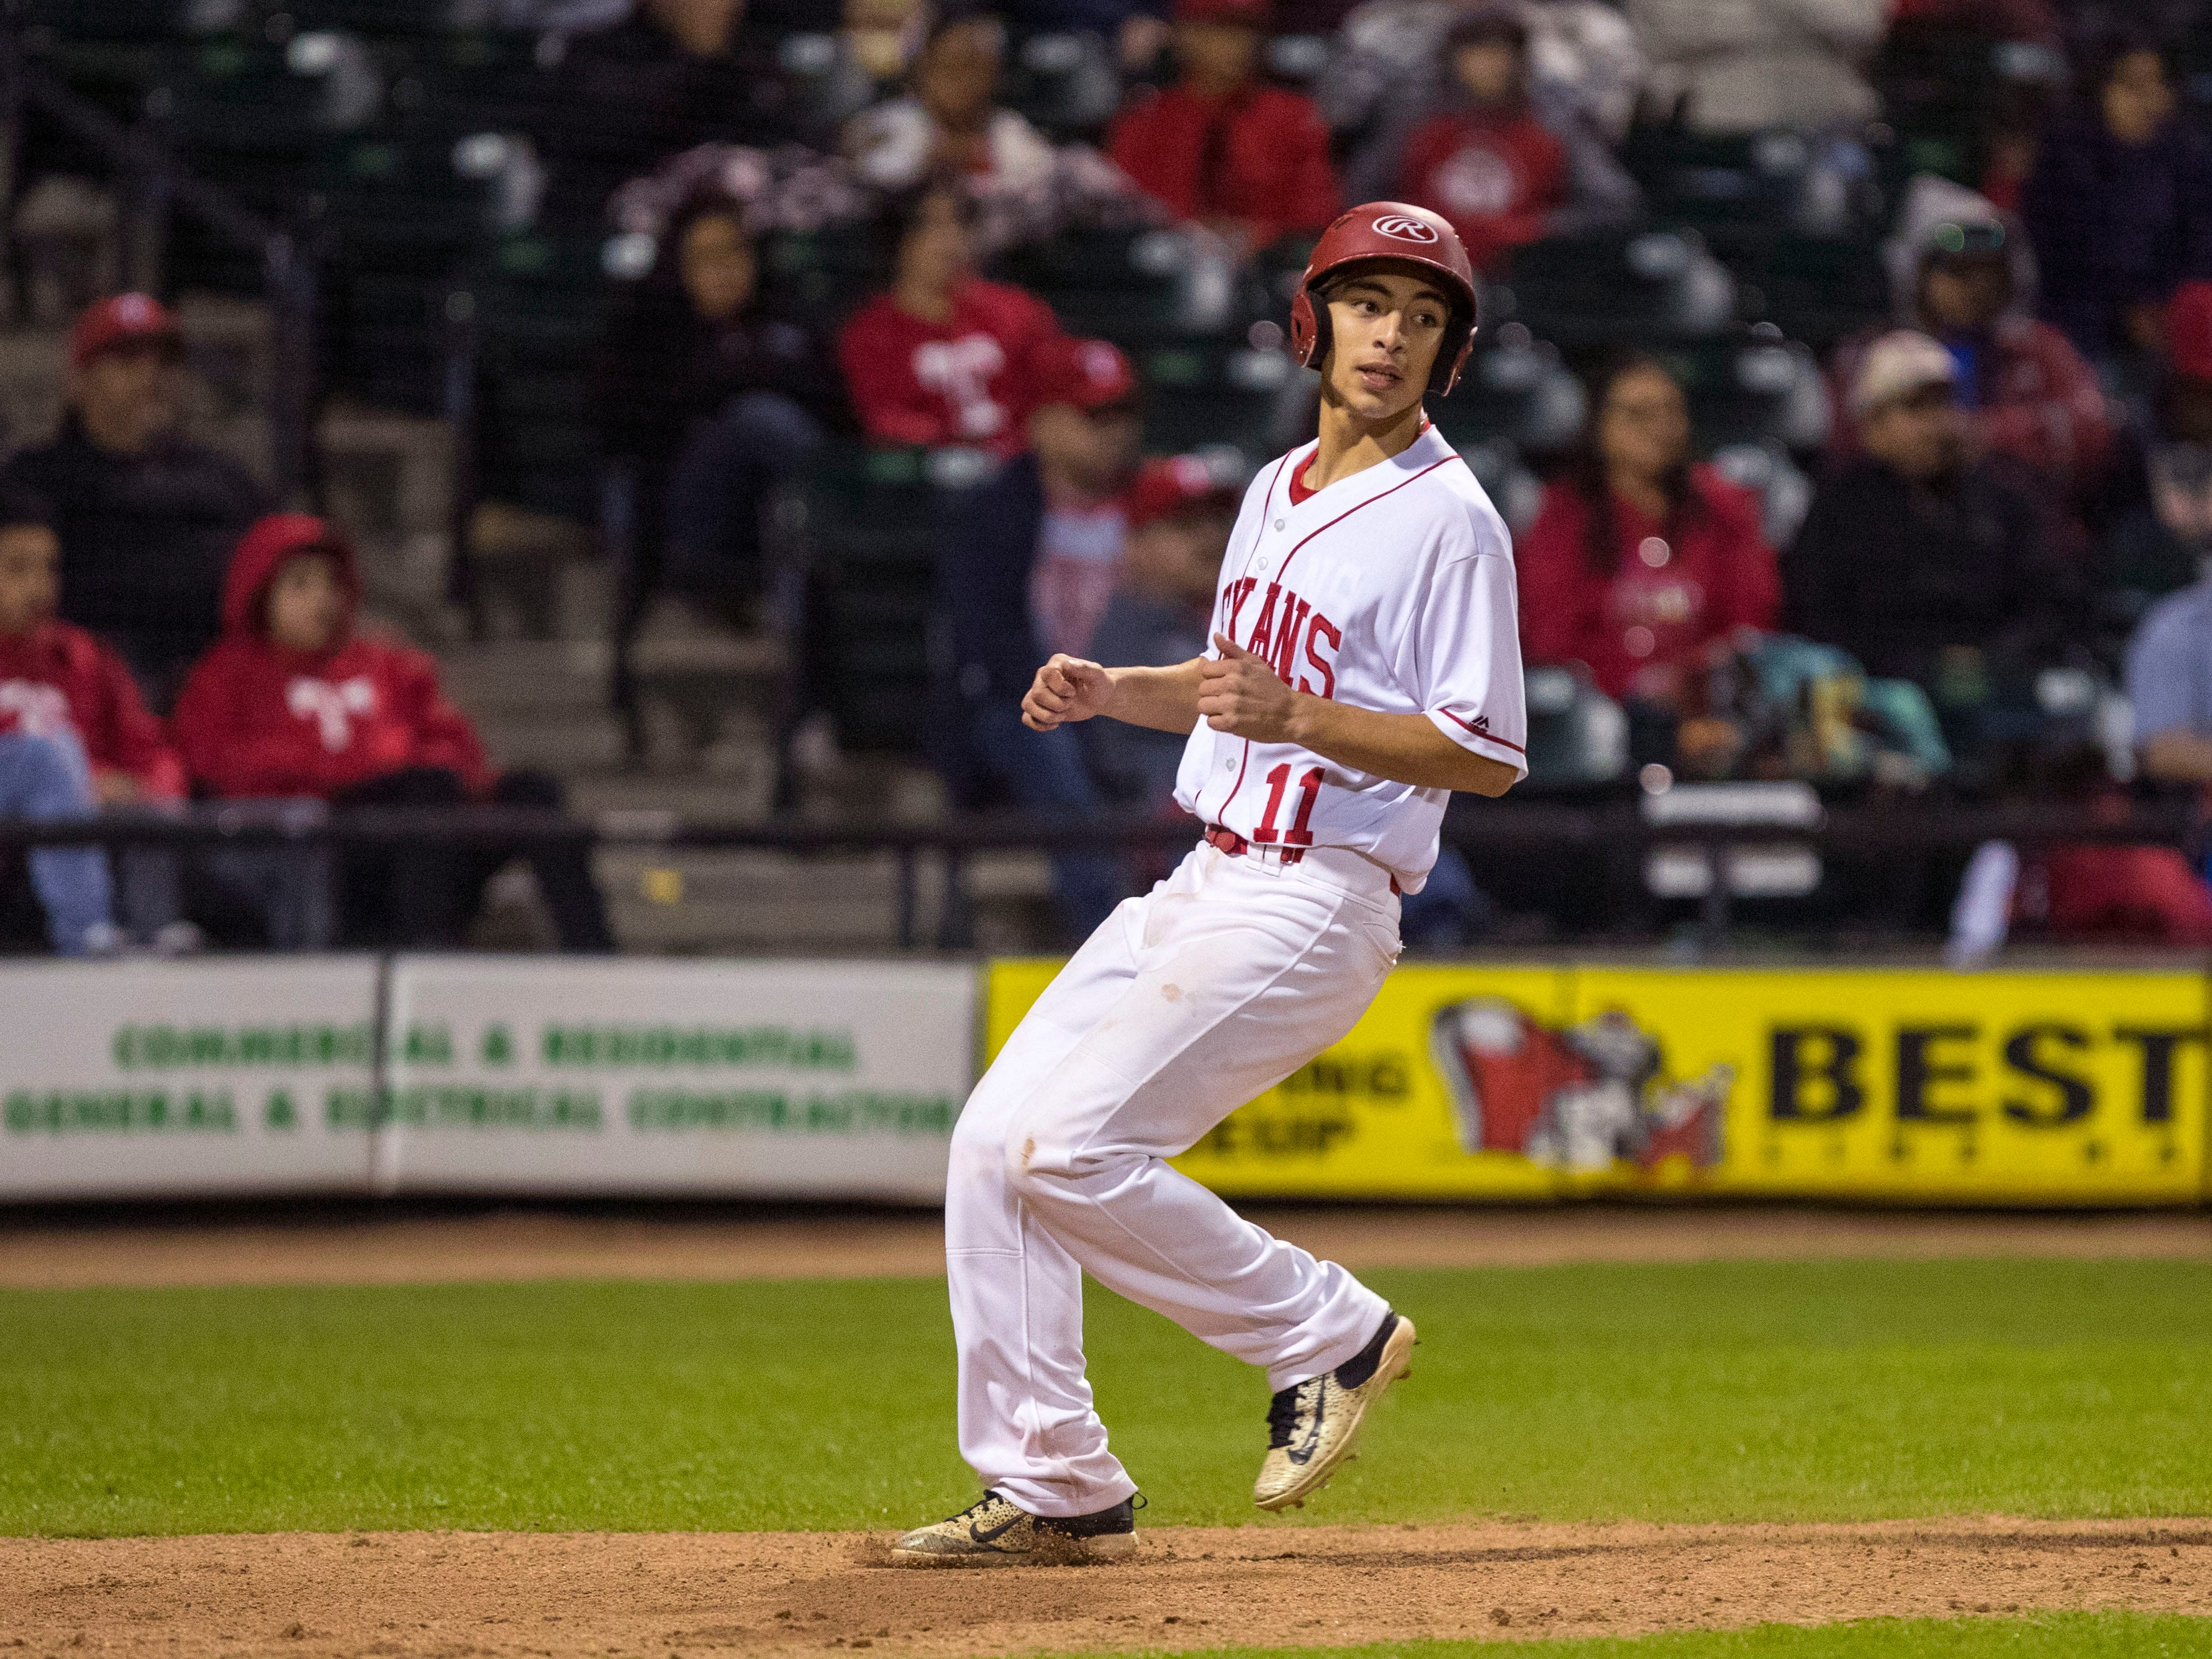 Ray Texans' Brandon Mejias scores a run in the sixth inning of the game against the Moody Trojans at Whataburger Field on Monday, February 18, 2019. Moody took an early lead to beat Ray 7-3.